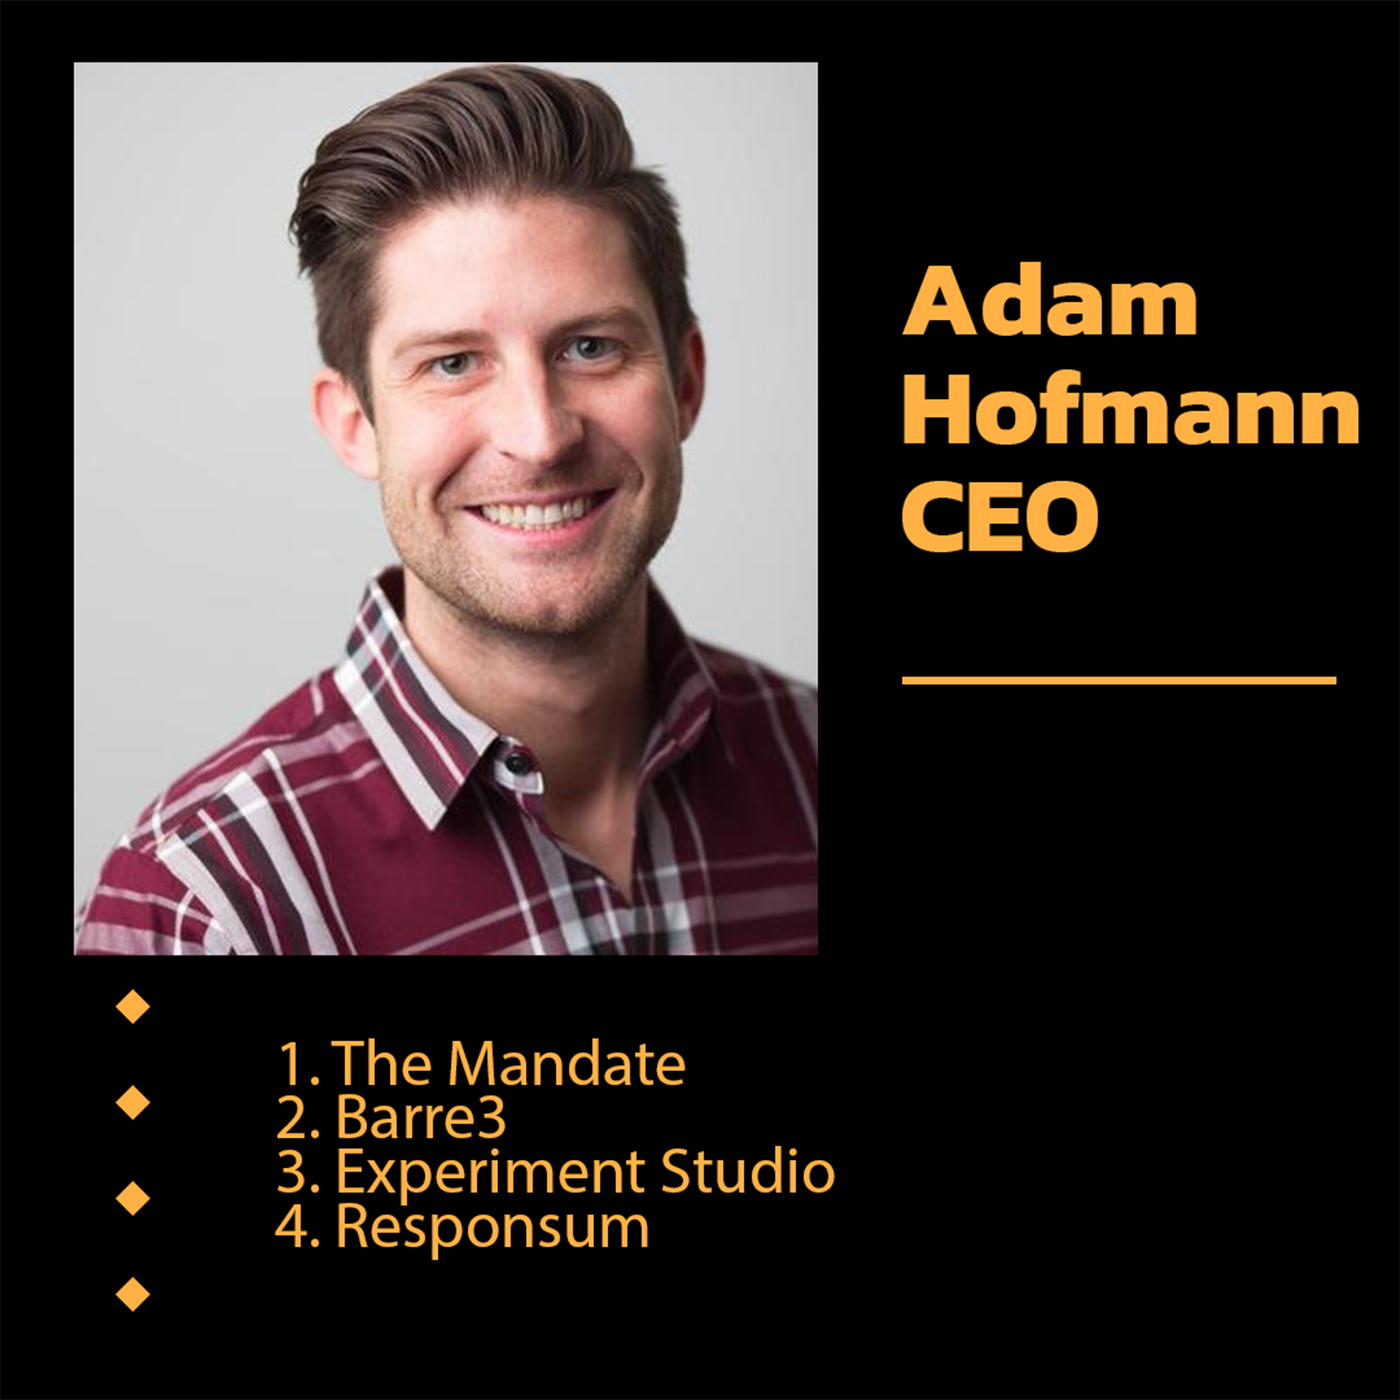 Adam Hofmann, Founder of The Mandate, and Serial Entrepreneur